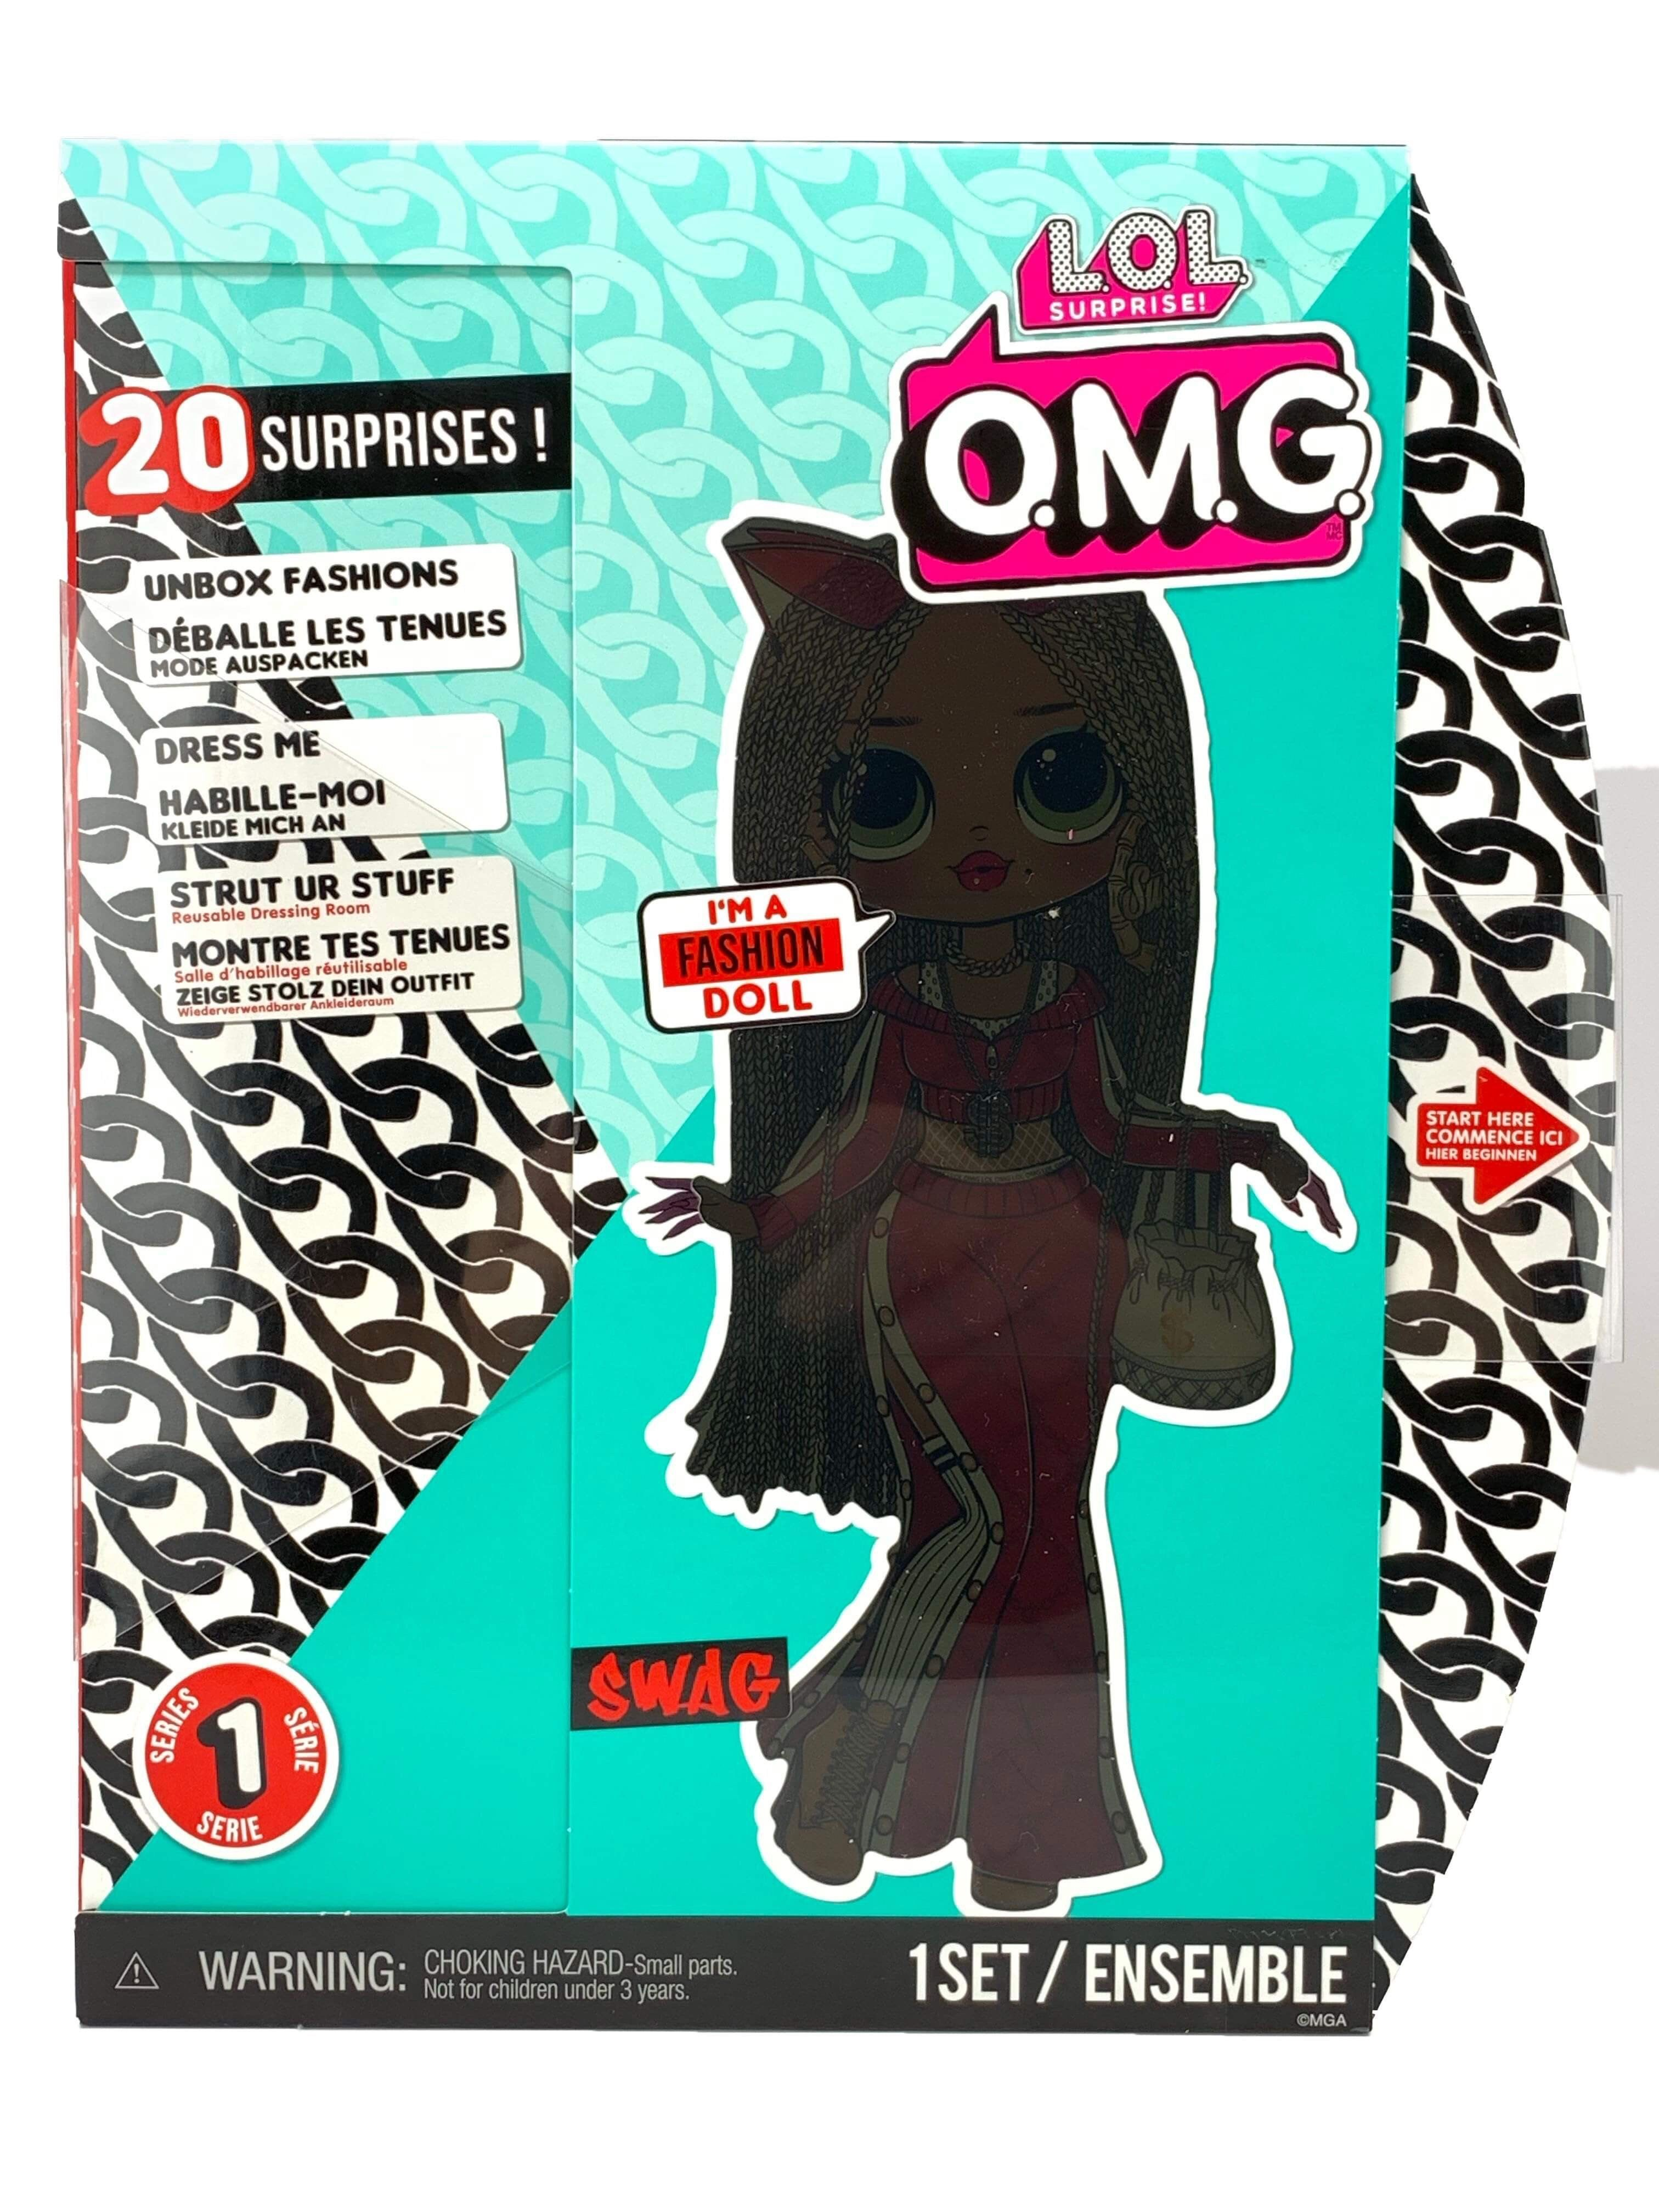 L O L Surprise O M G Swag Fashion Doll With 20 Surprises Lol Omg Lol Fashion Dolls Lol Dolls